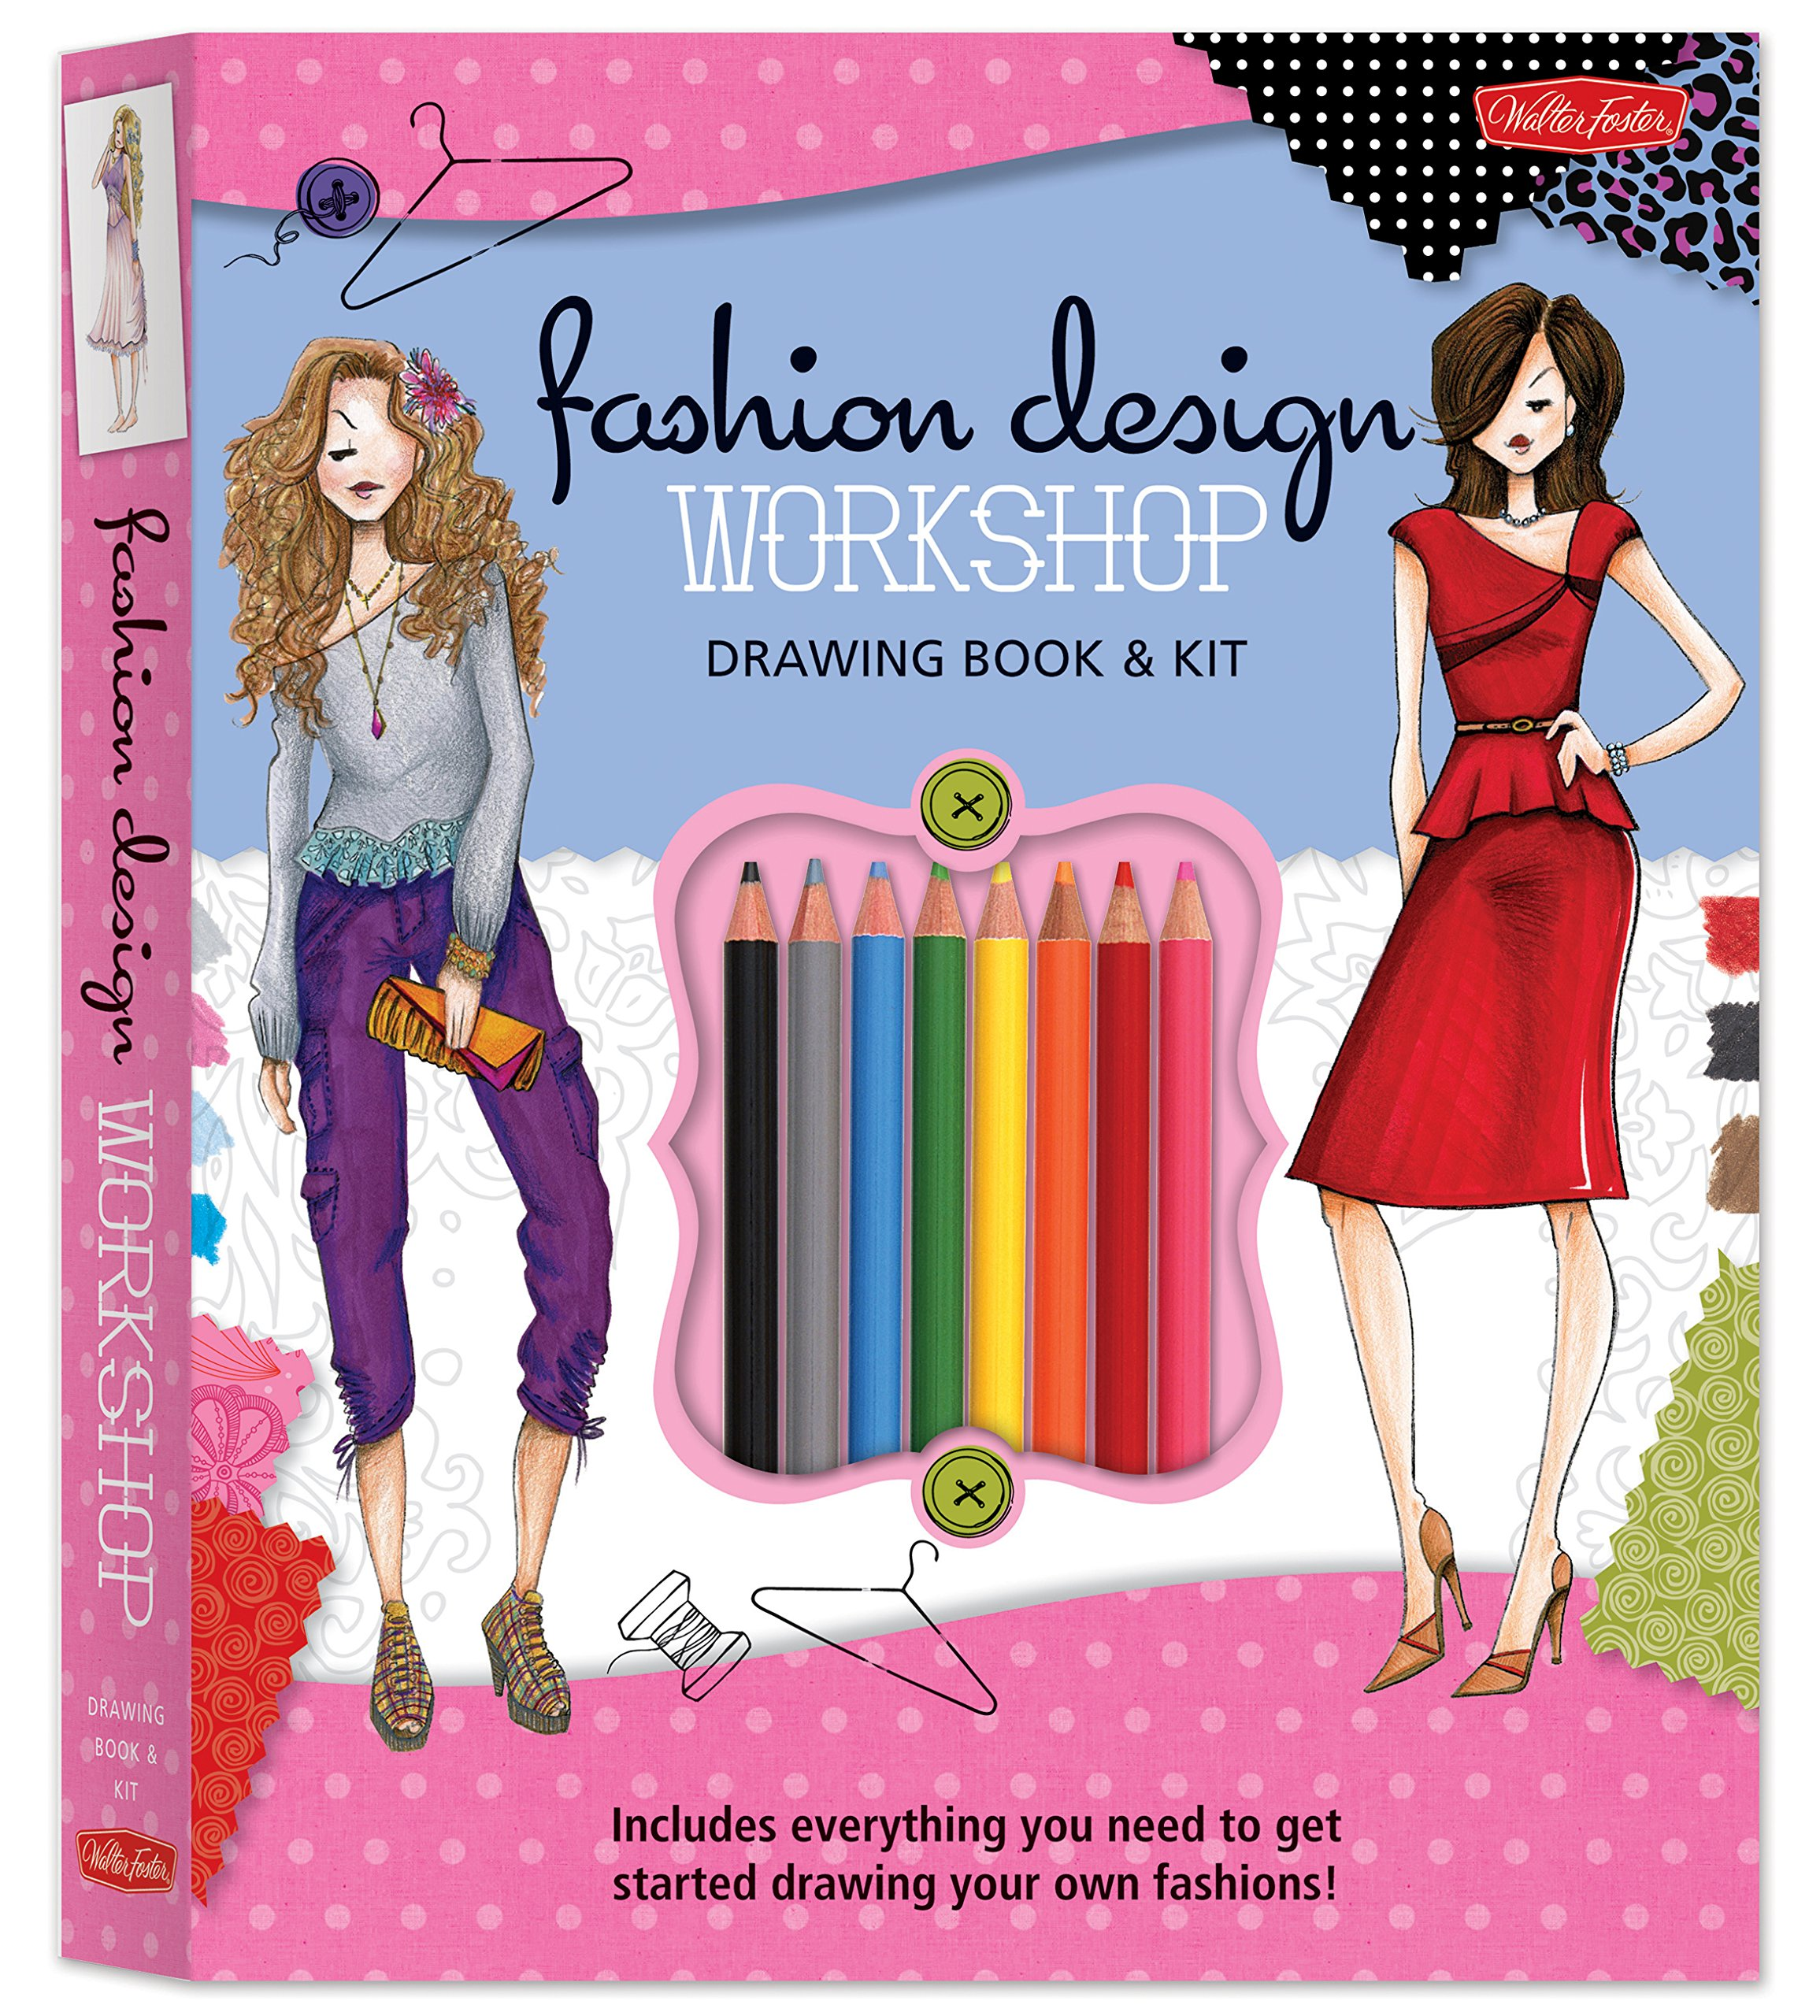 Fashion Design Workshop Drawing Book Kit Includes Everything You